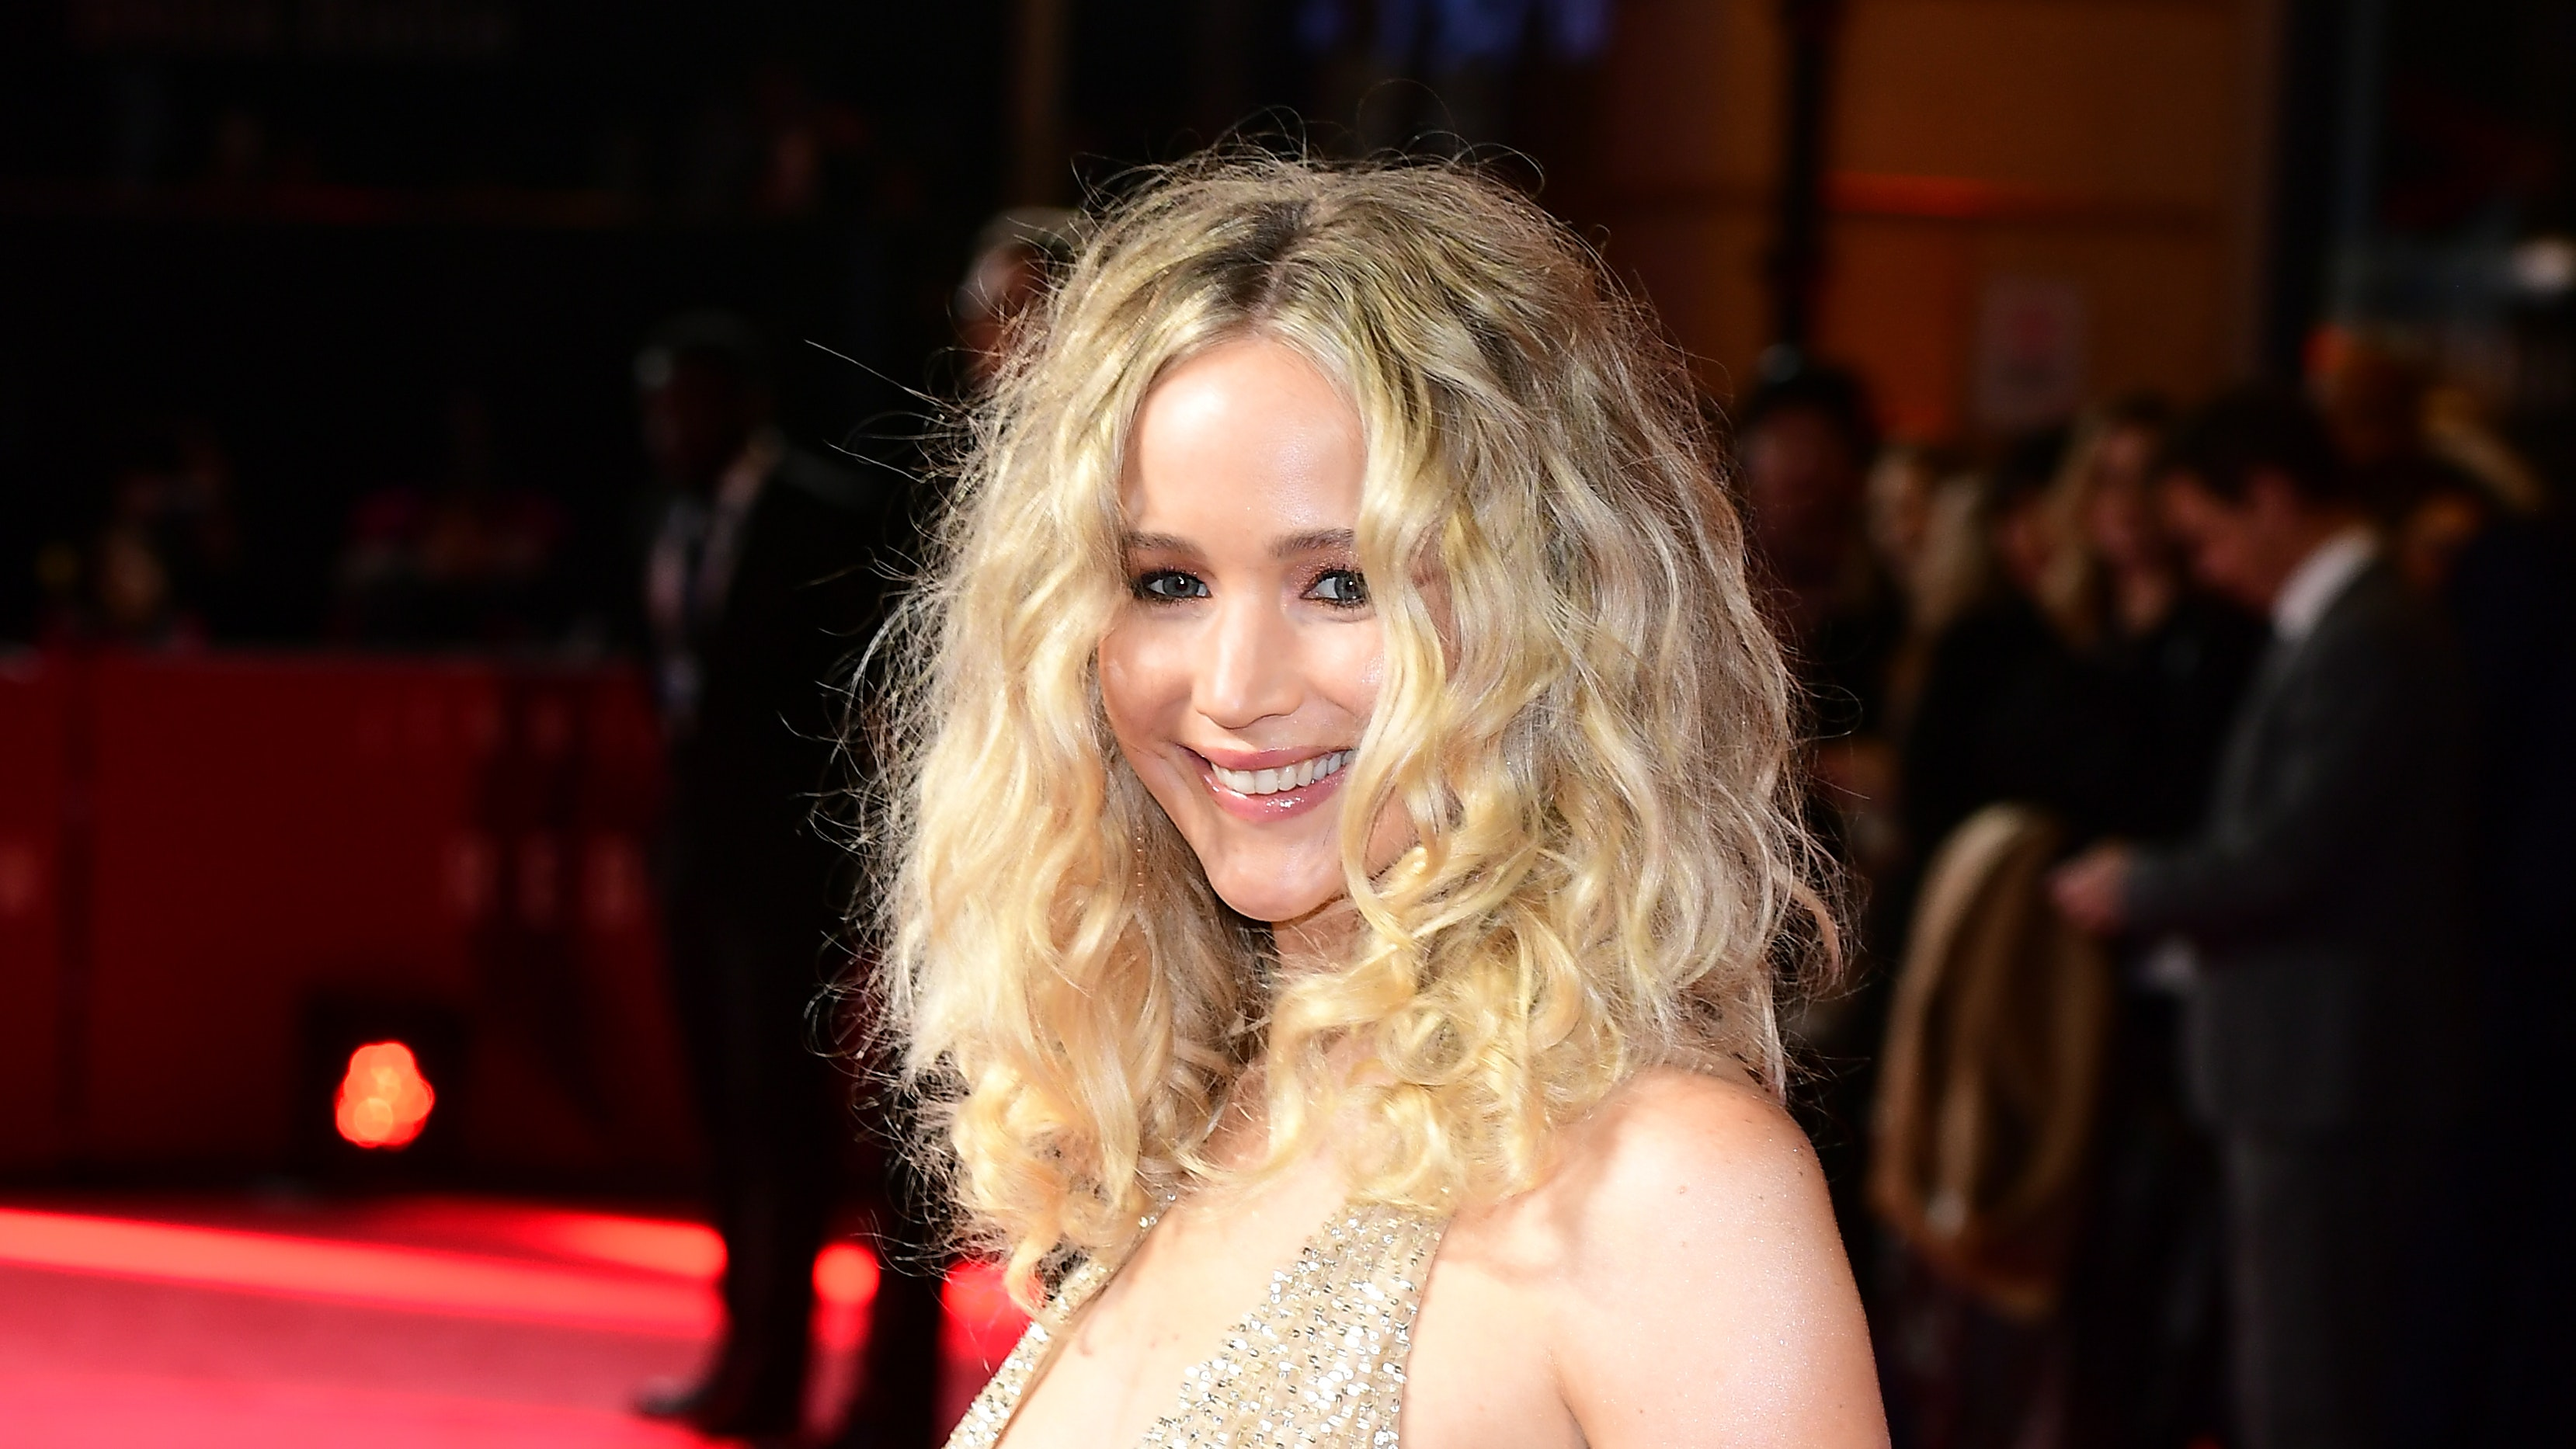 Jennifer Lawrence Responds To Dress Controversy: